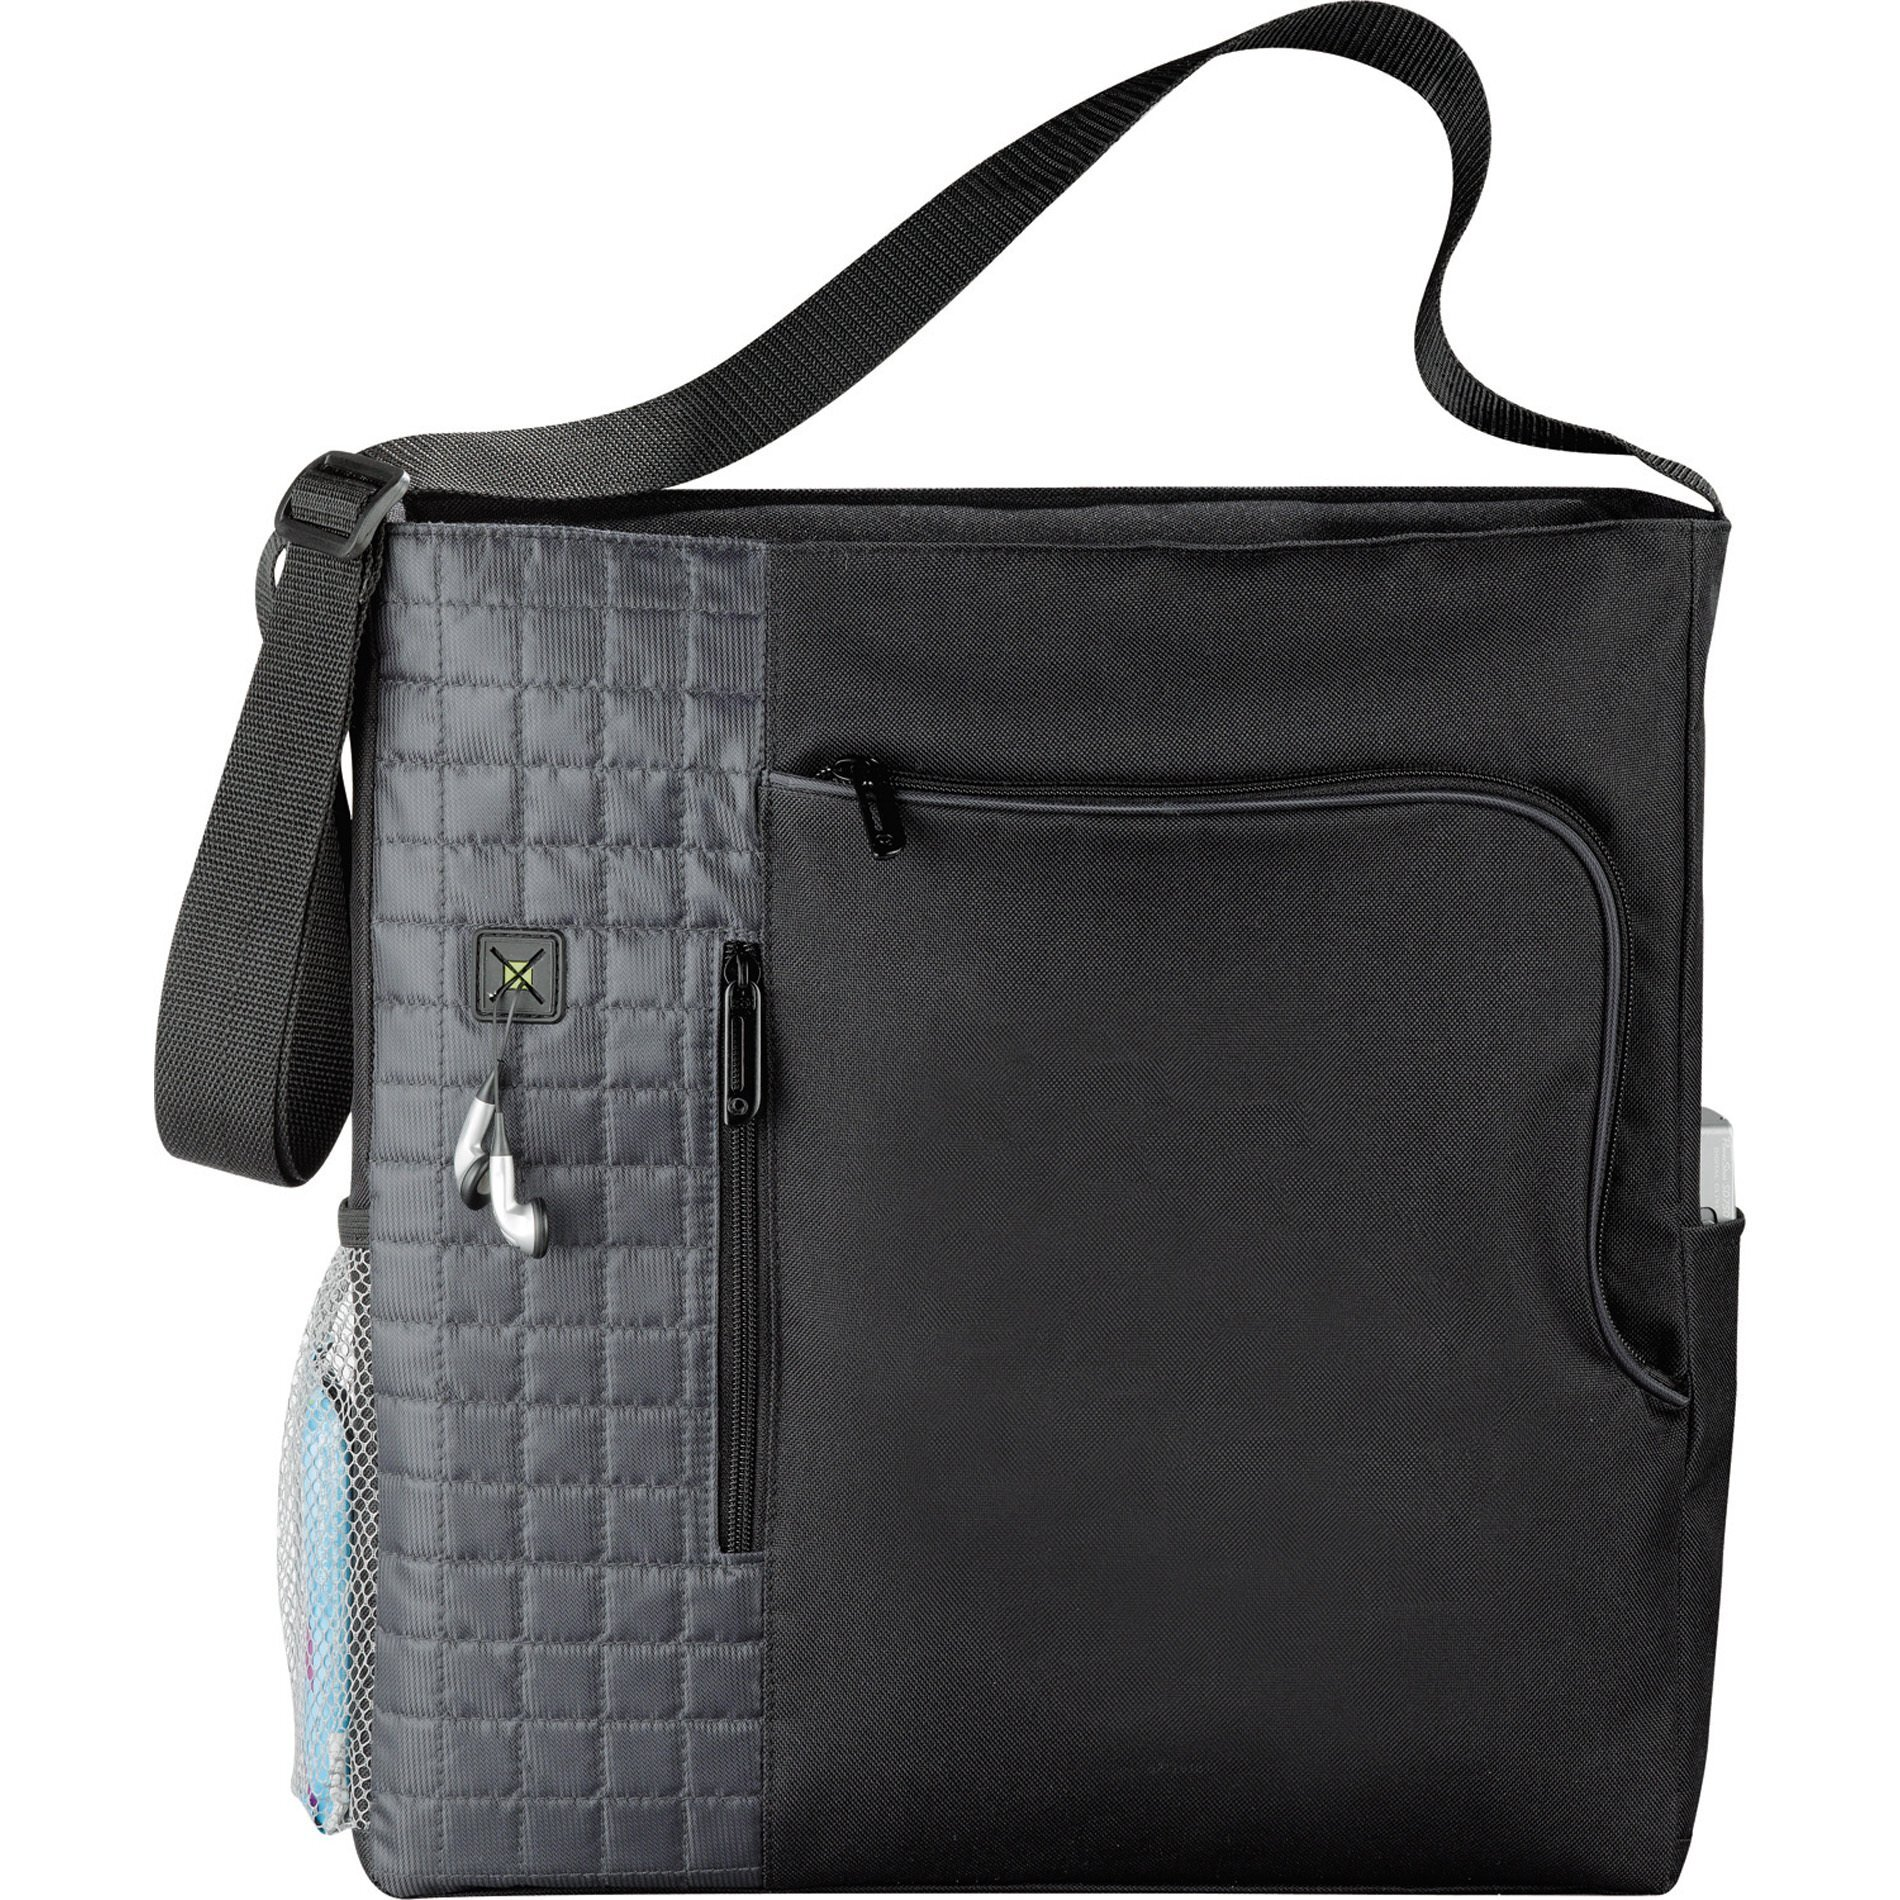 Verve Deluxe Polycanvas Business Tote